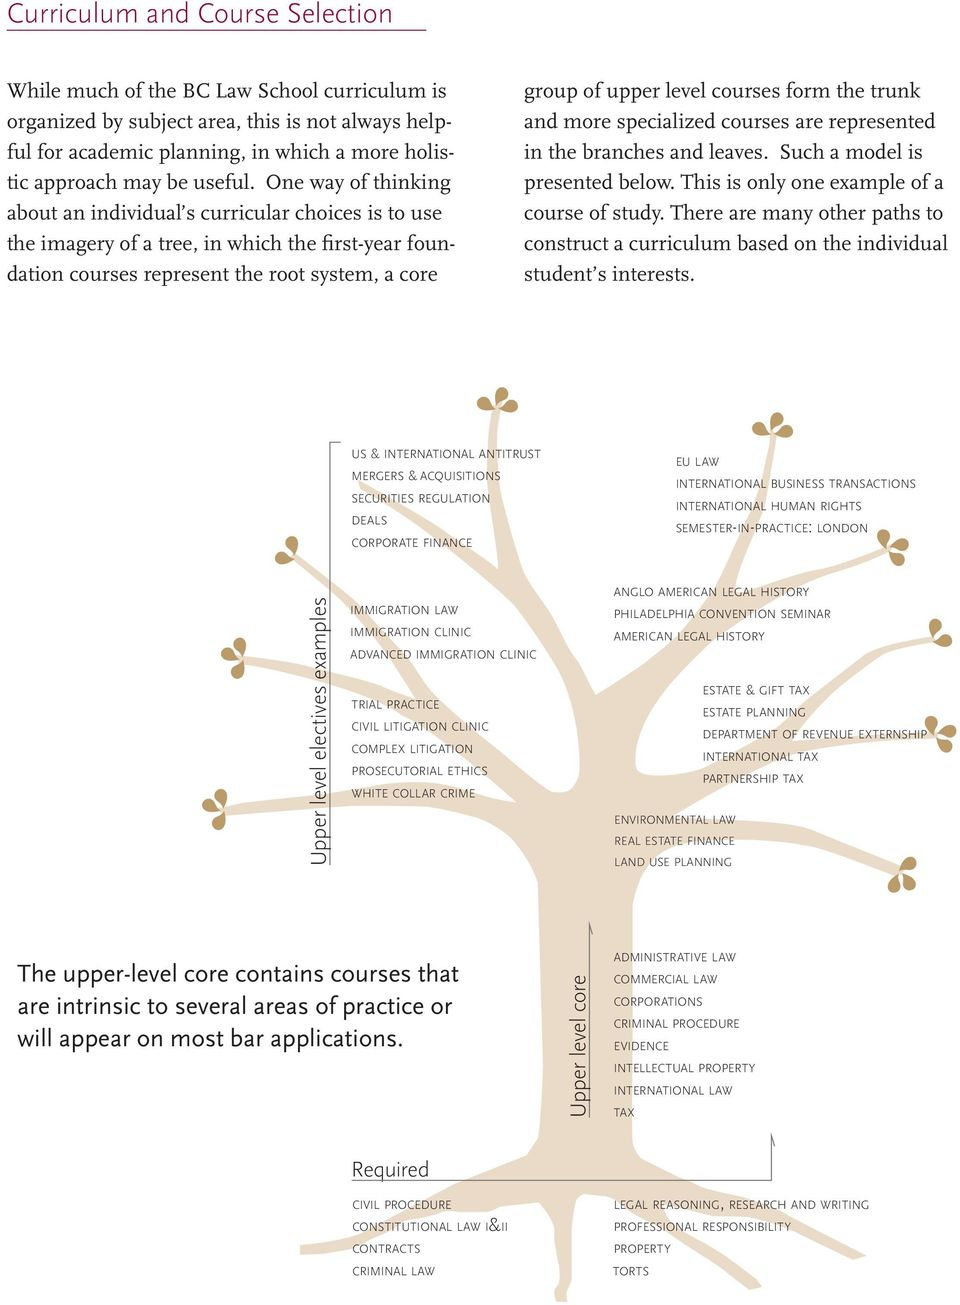 One way of thinking about an individual s curricular choices is to use the imagery of a tree, in which the first-year foundation courses represent the root system, a core group of upper level courses